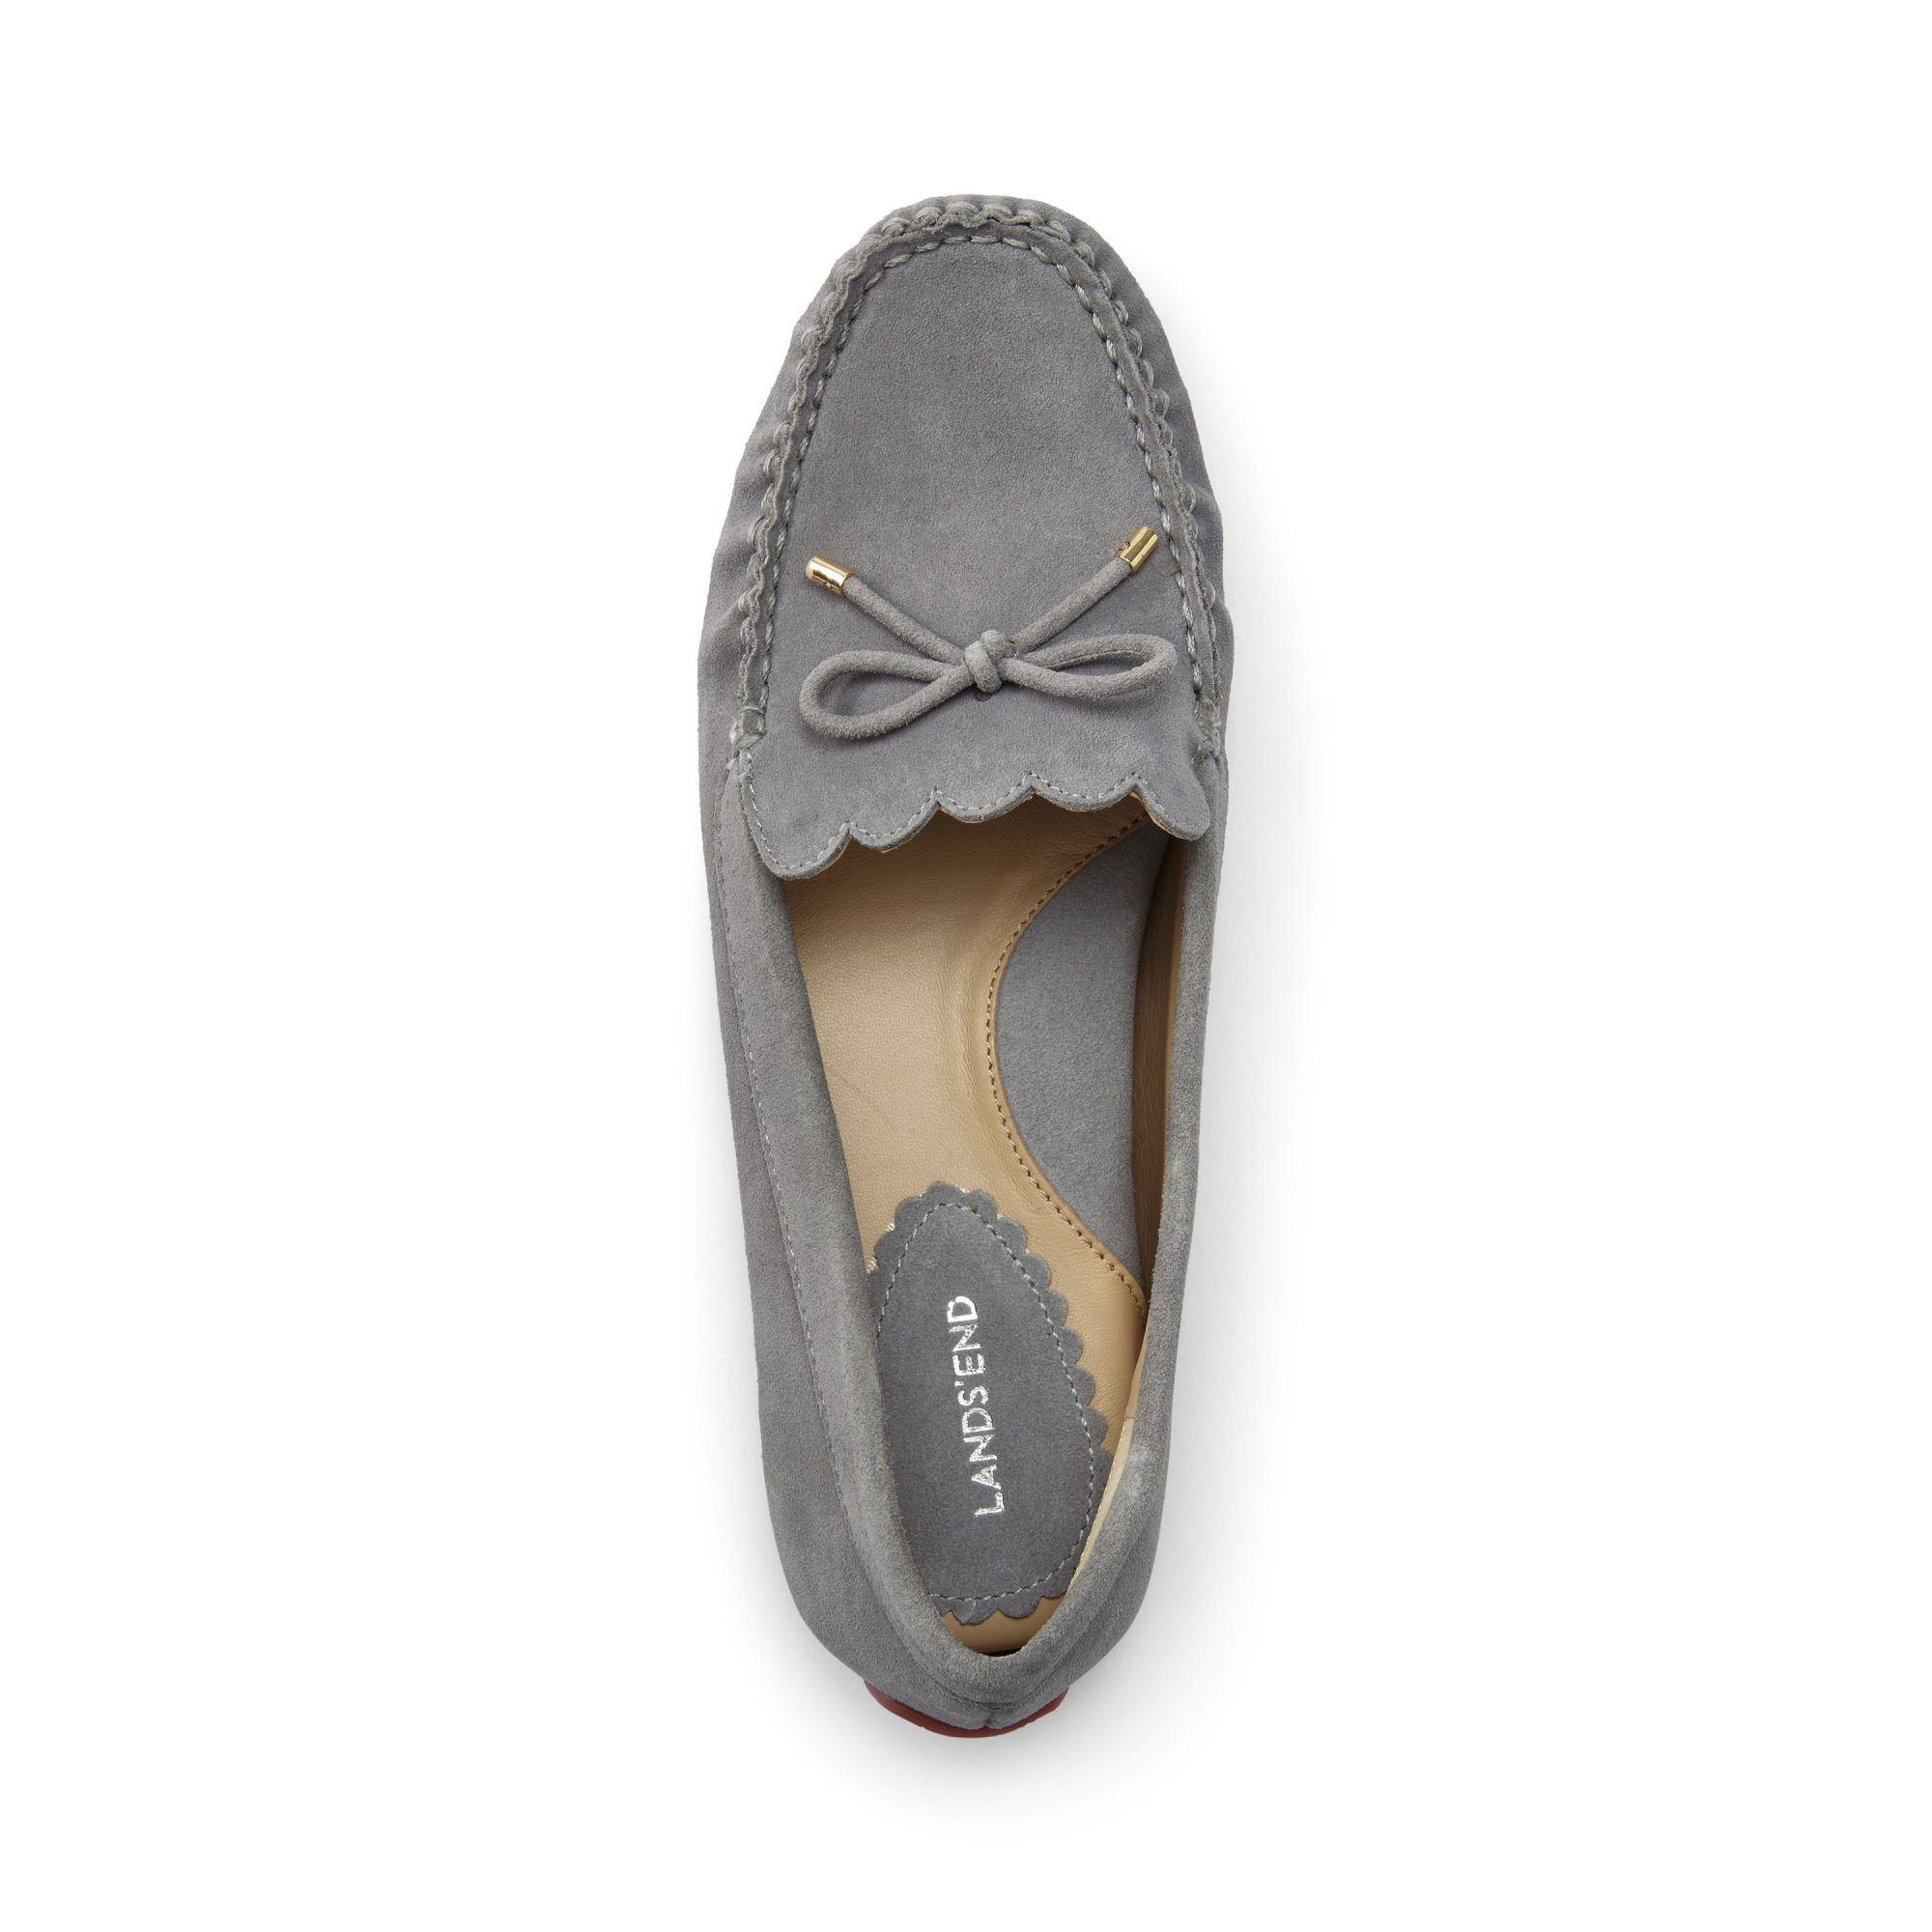 6e89d140b59c Lands' End Grey Wide Scalloped Driving Shoes in Gray - Save 16% - Lyst